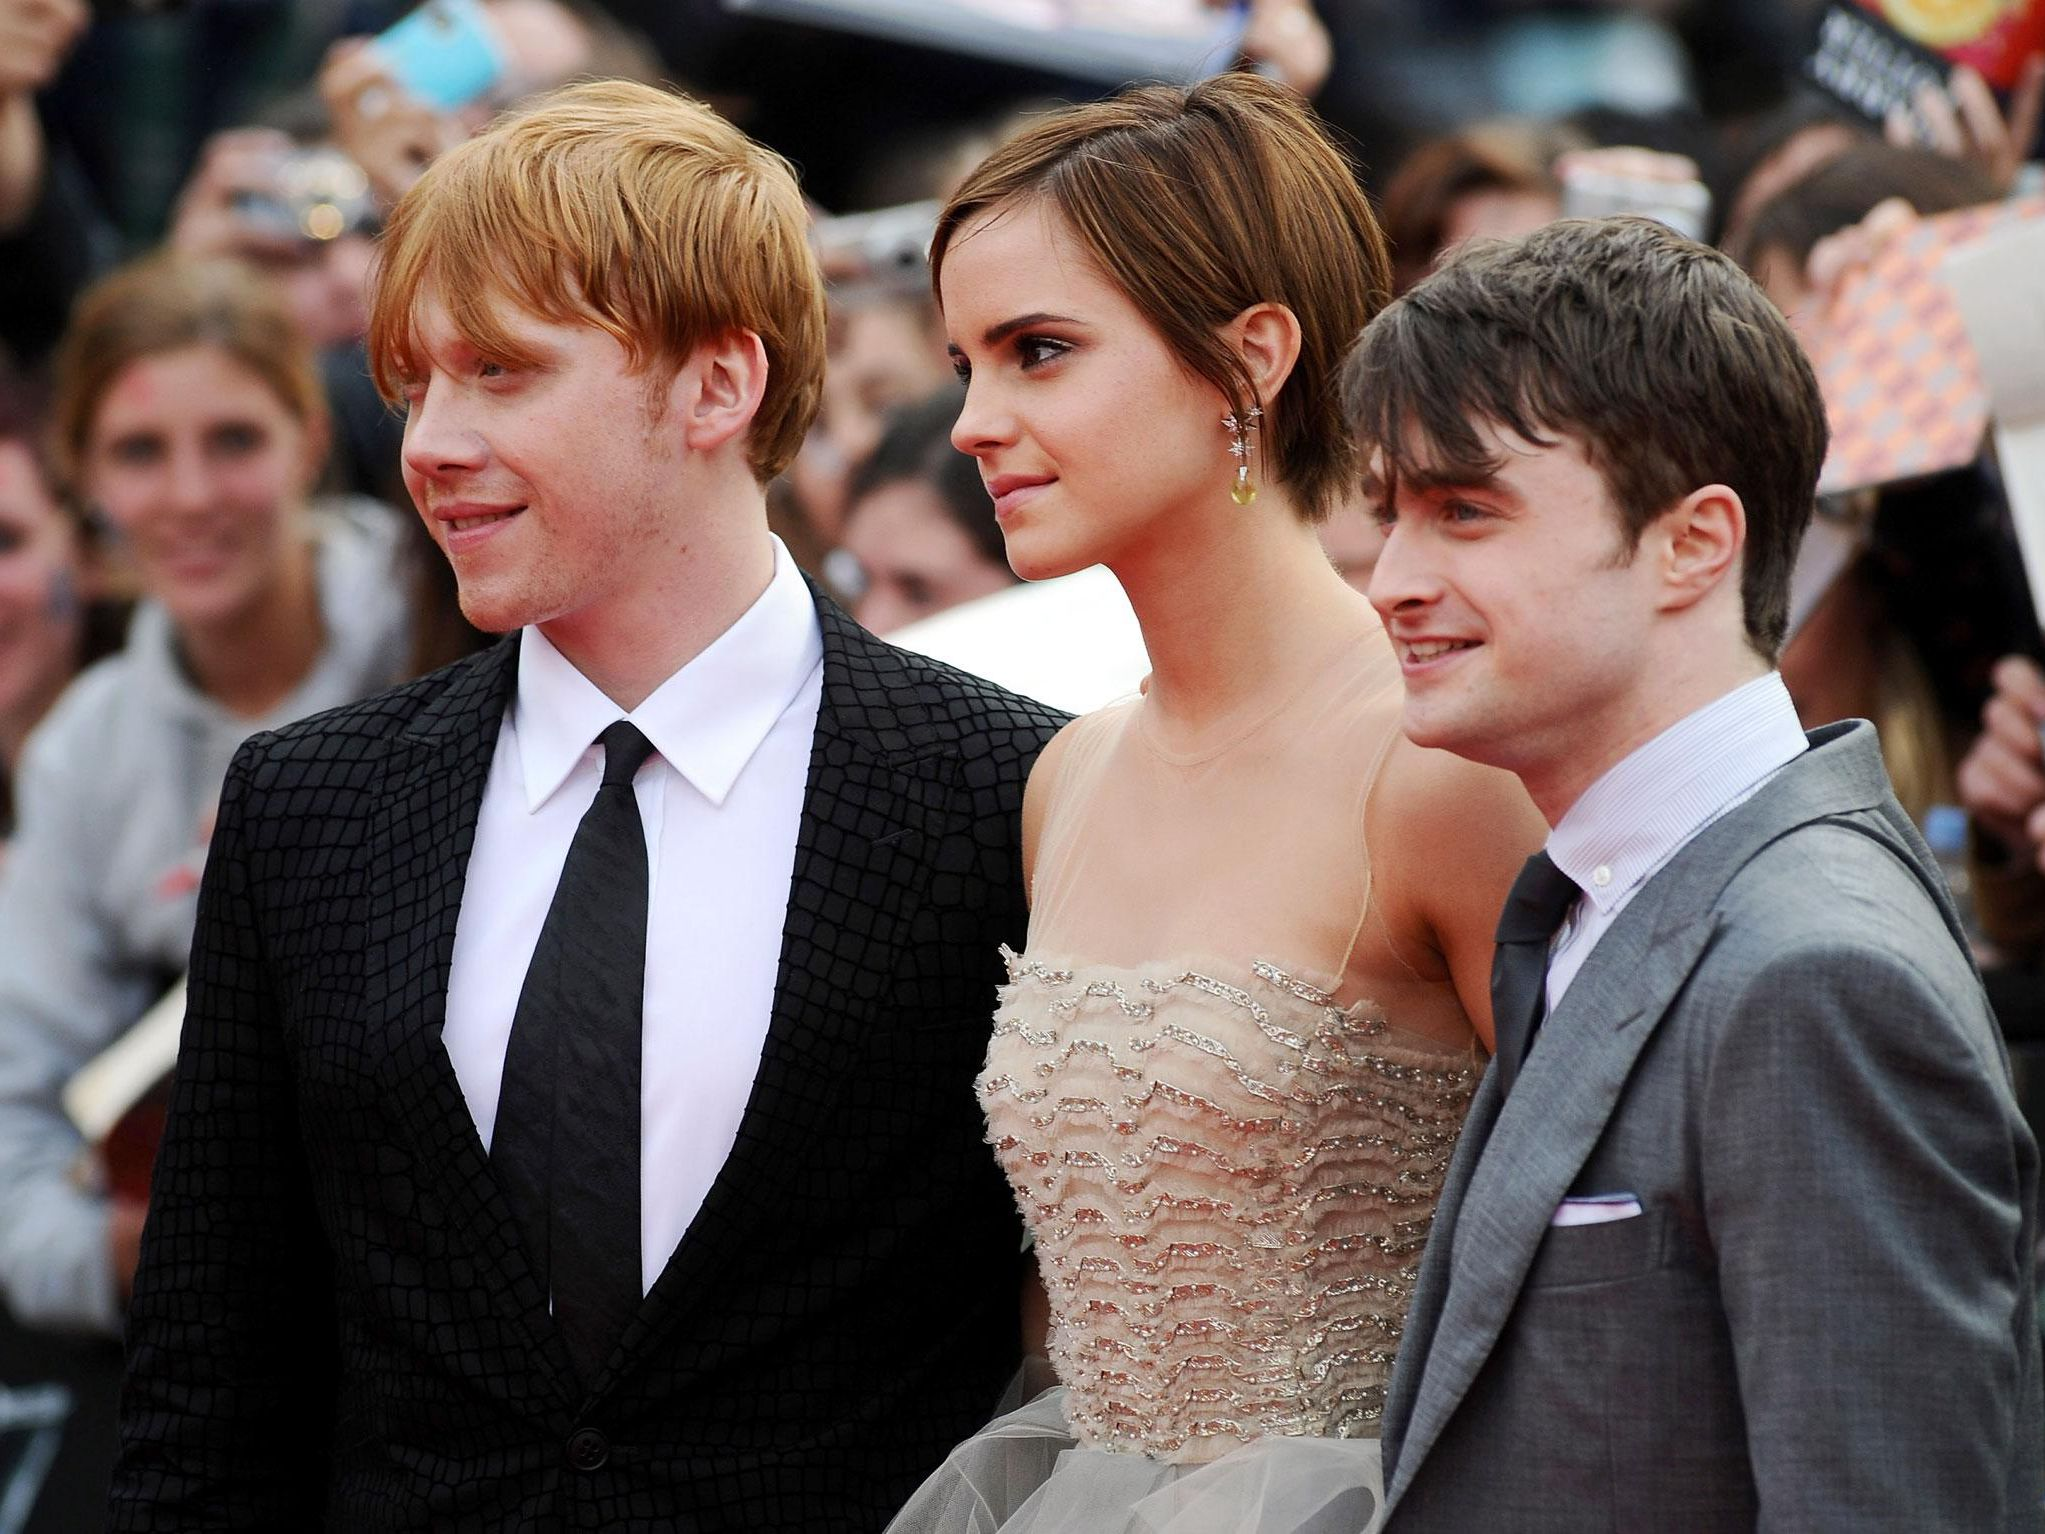 Emma Watson Discusses Her Harry Potter Role